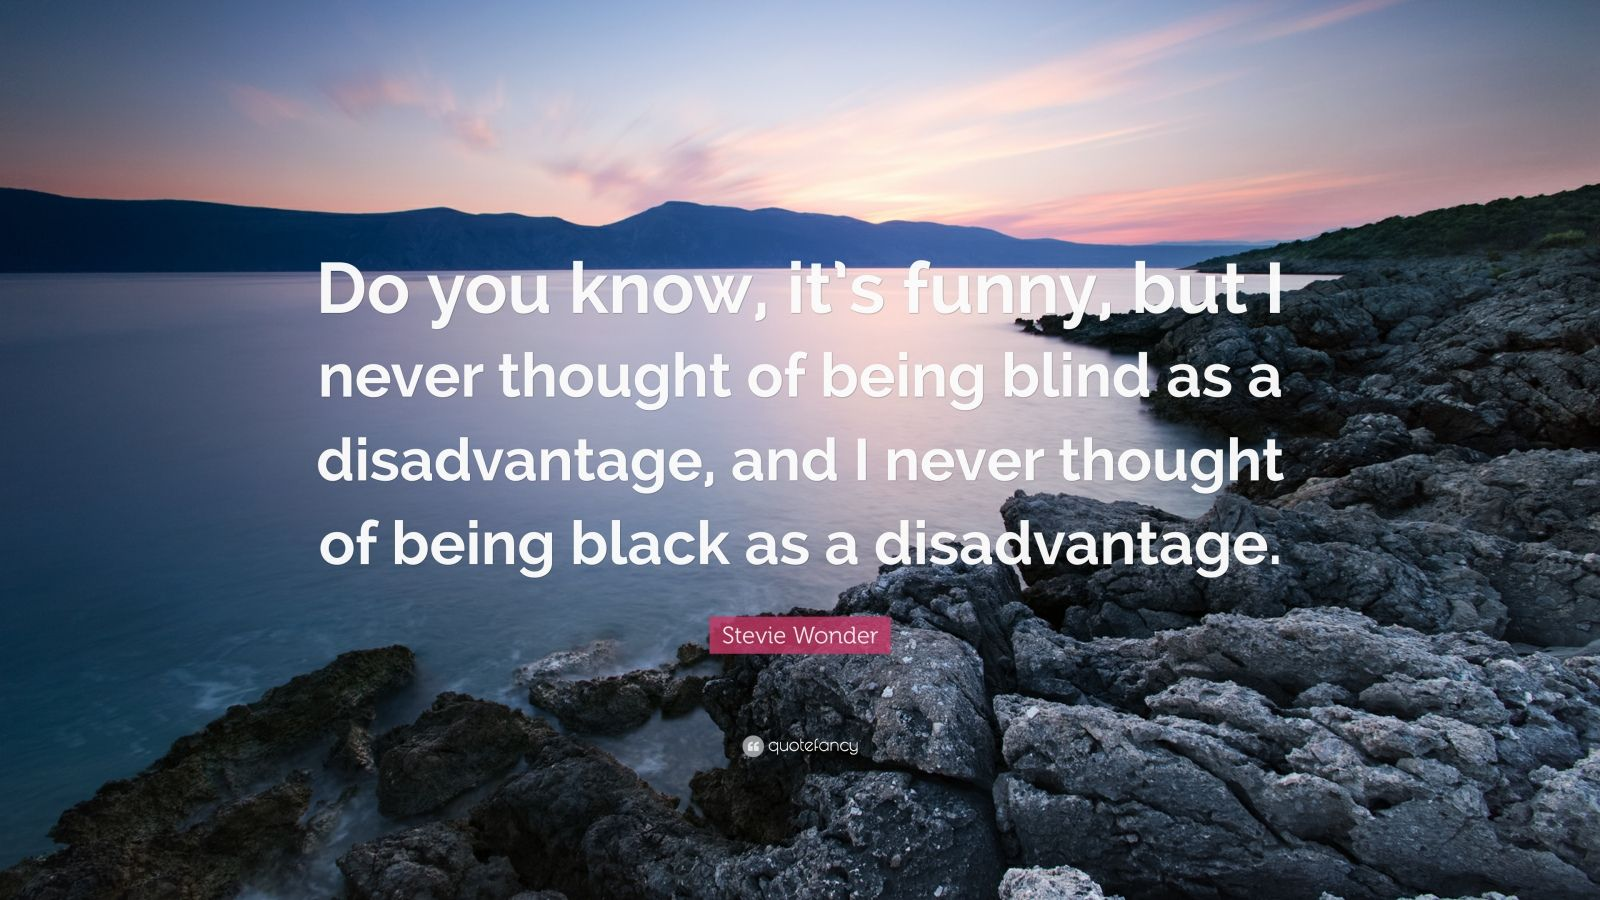 """Stevie Wonder Quote: """"Do you know, it's funny, but I never thought of being blind as a disadvantage, and I never thought of being black as a disadvantage."""""""